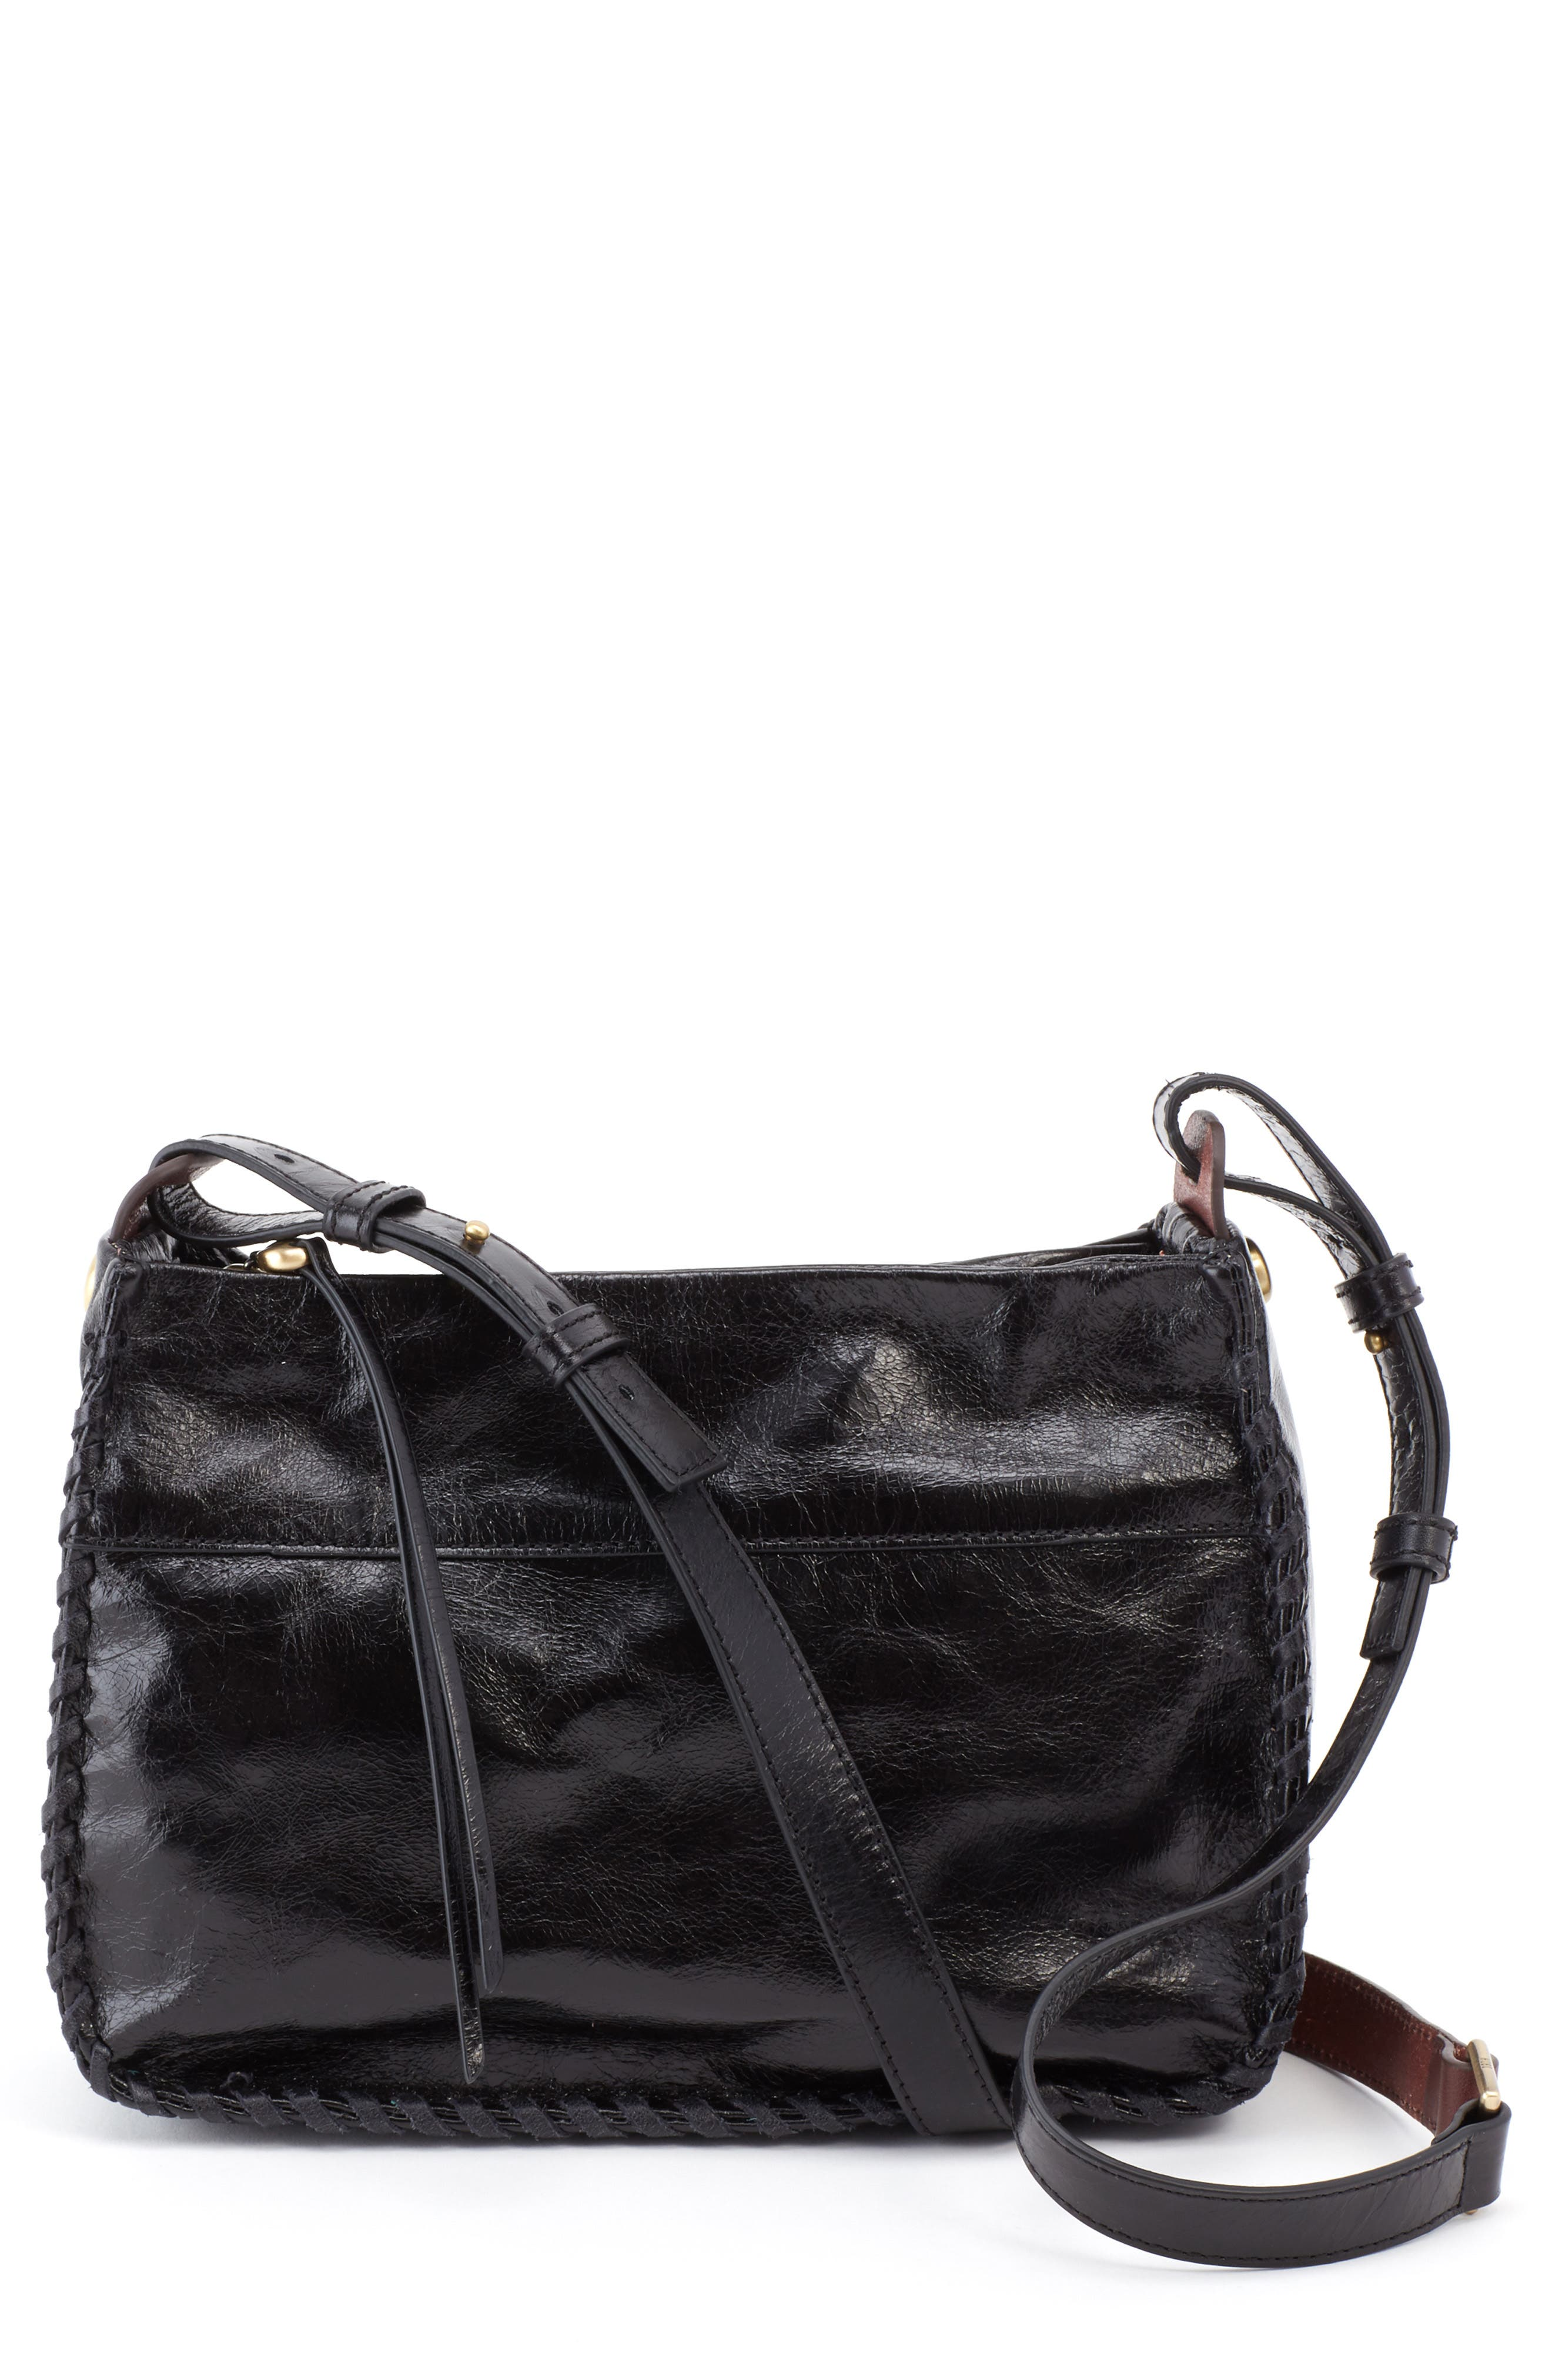 Banjo Shoulder Bag,                         Main,                         color, 001